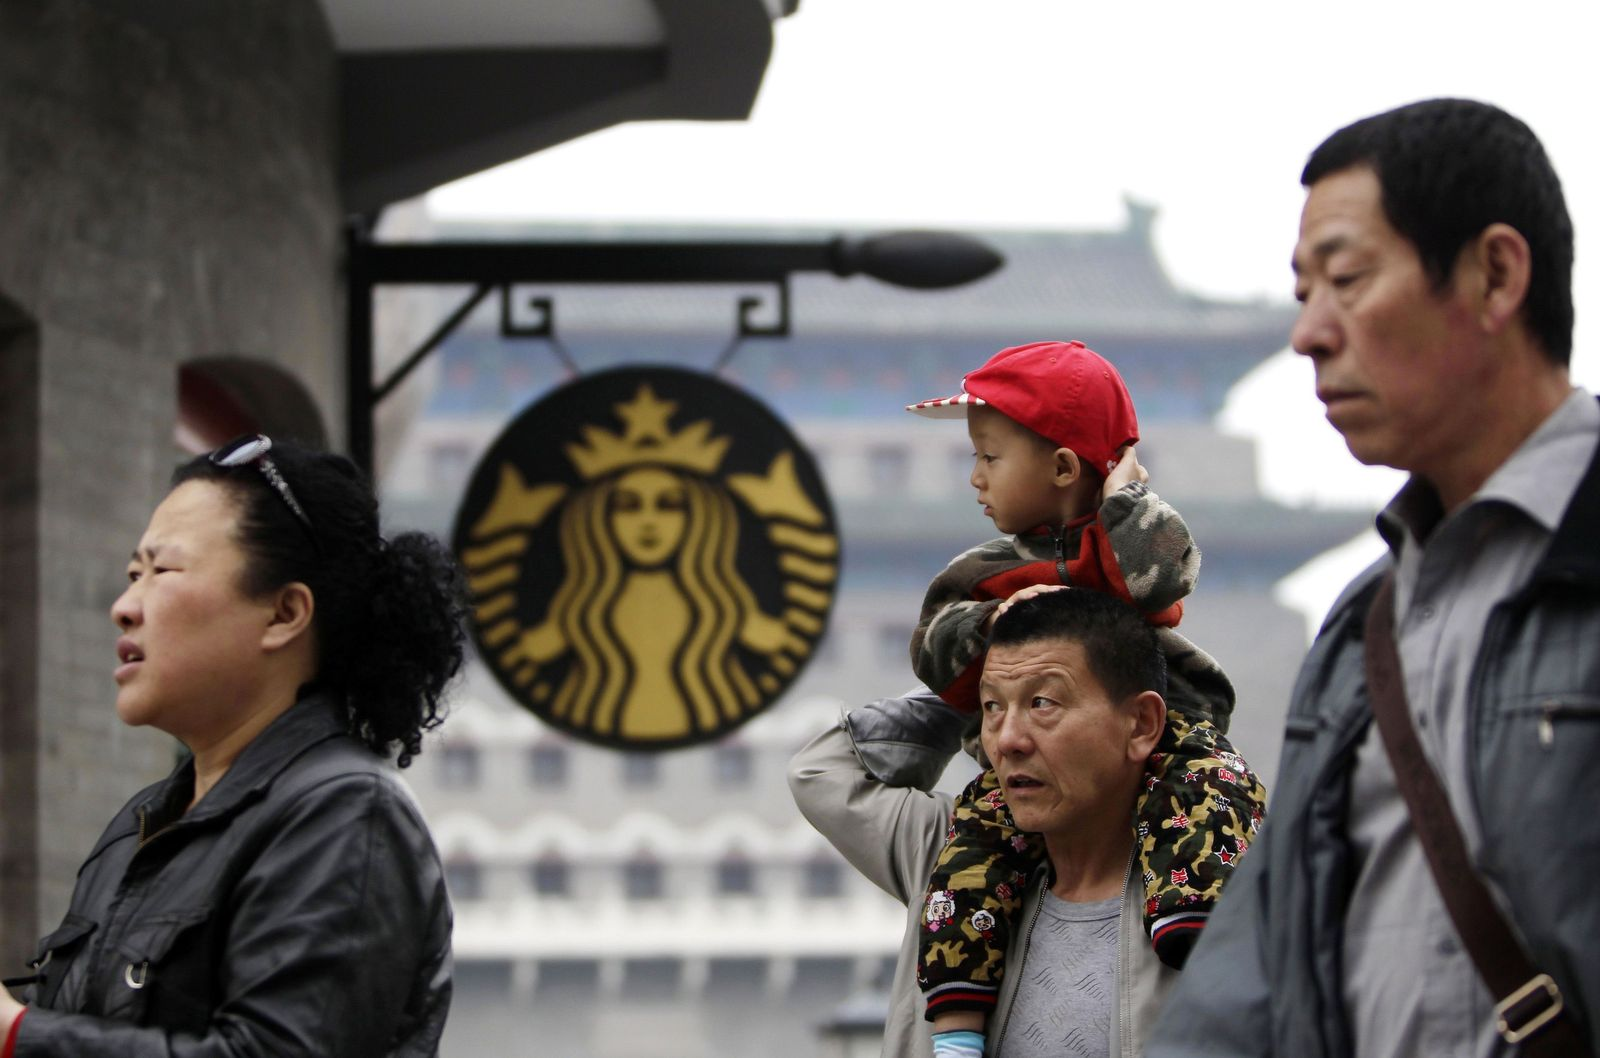 STARBUCKS-CHINA/PRICING